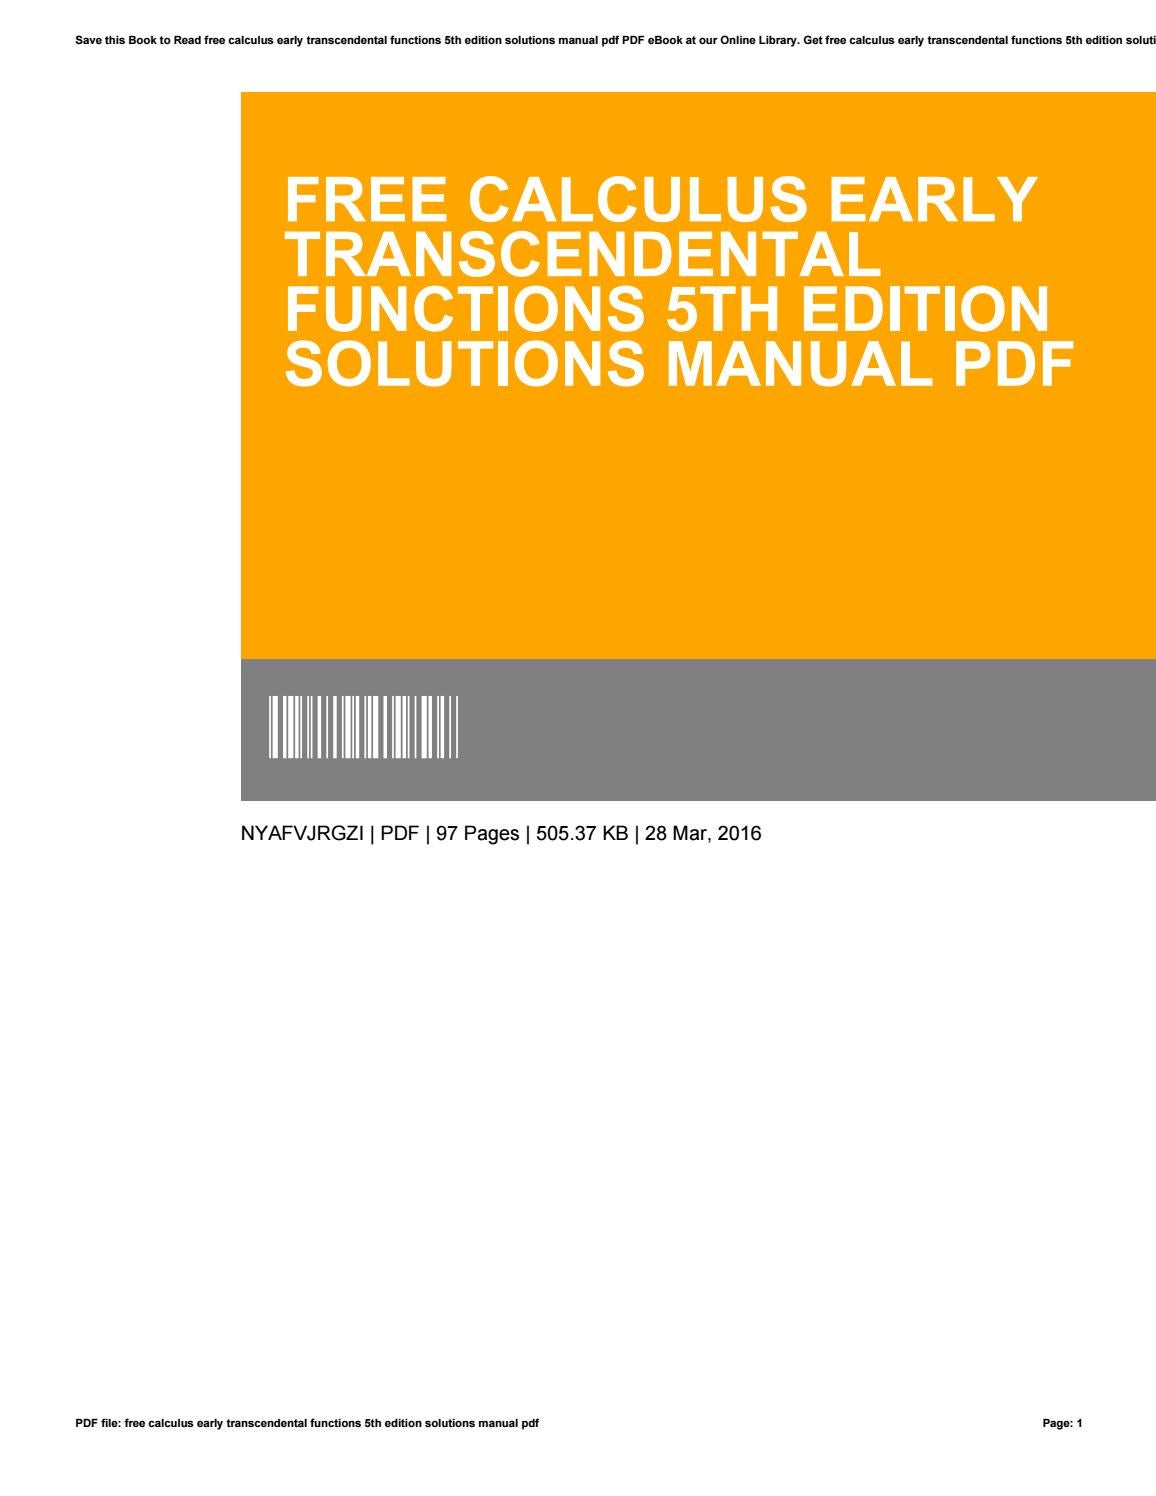 Free calculus early transcendental functions 5th edition solutions manual  pdf by SalvadorGlenn1682 - issuu